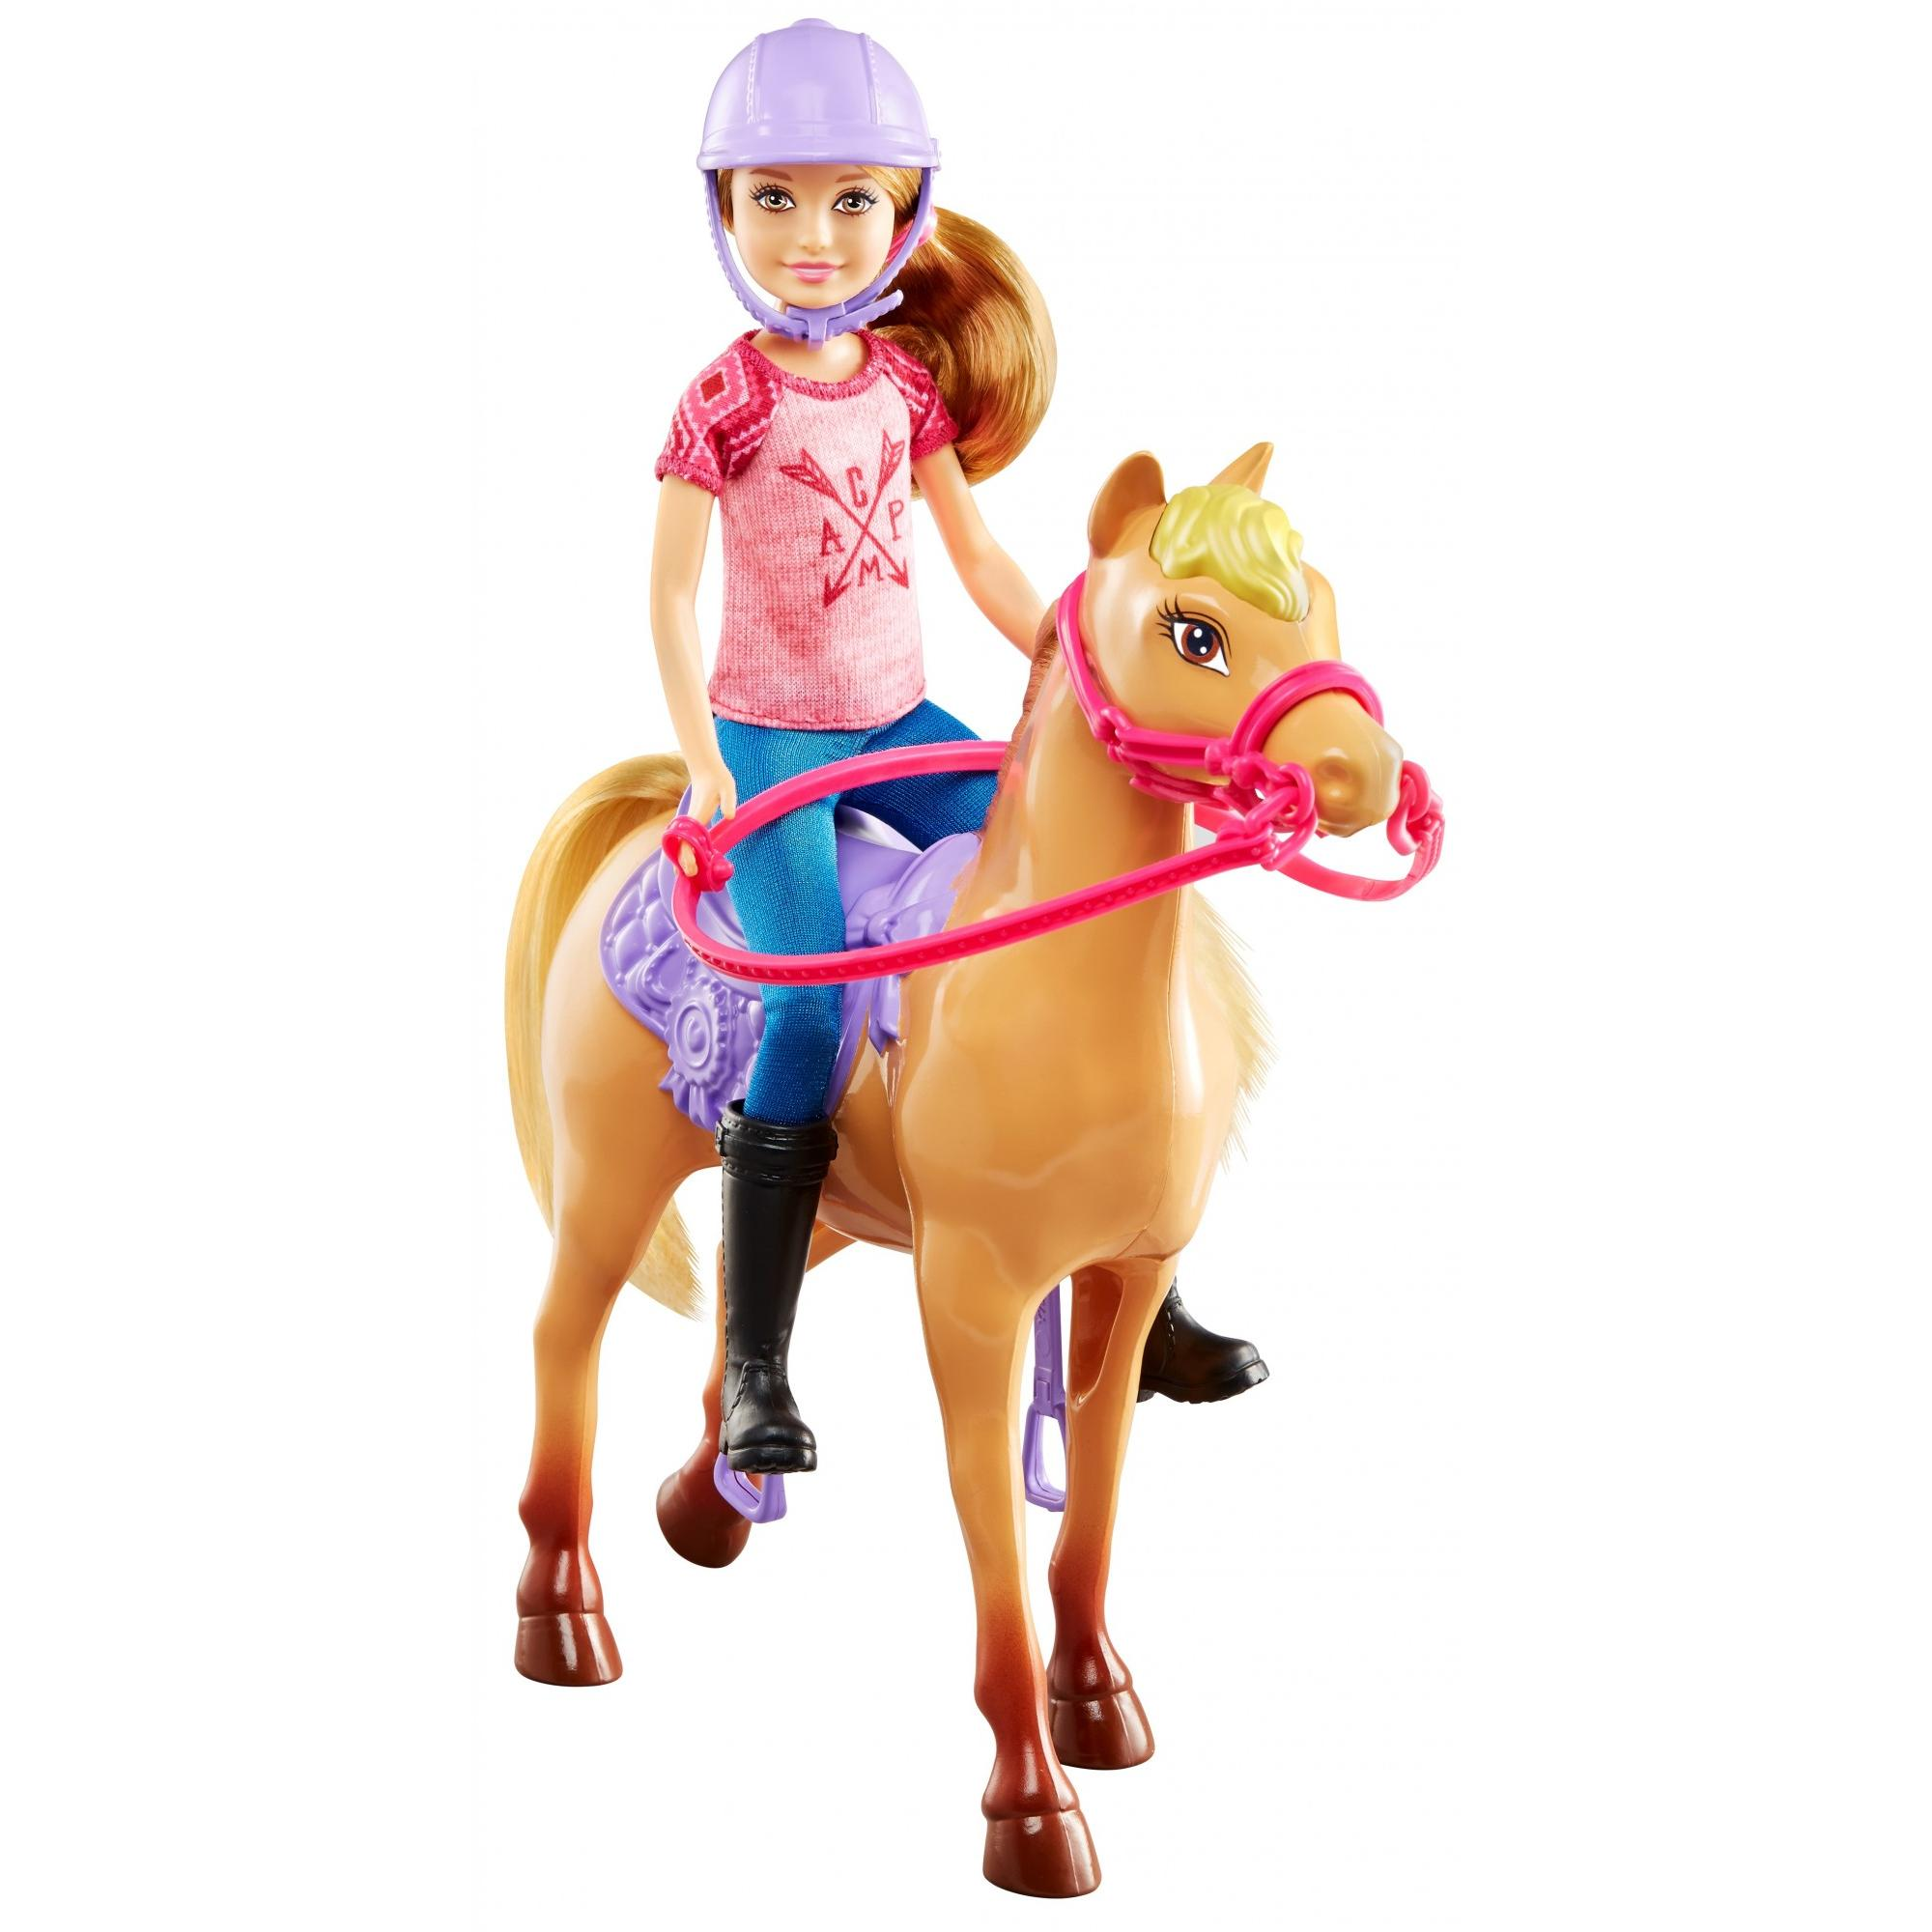 Barbie Camping Fun Stacie Doll & Horse Set with Themed Accessories by MATTEL INC.